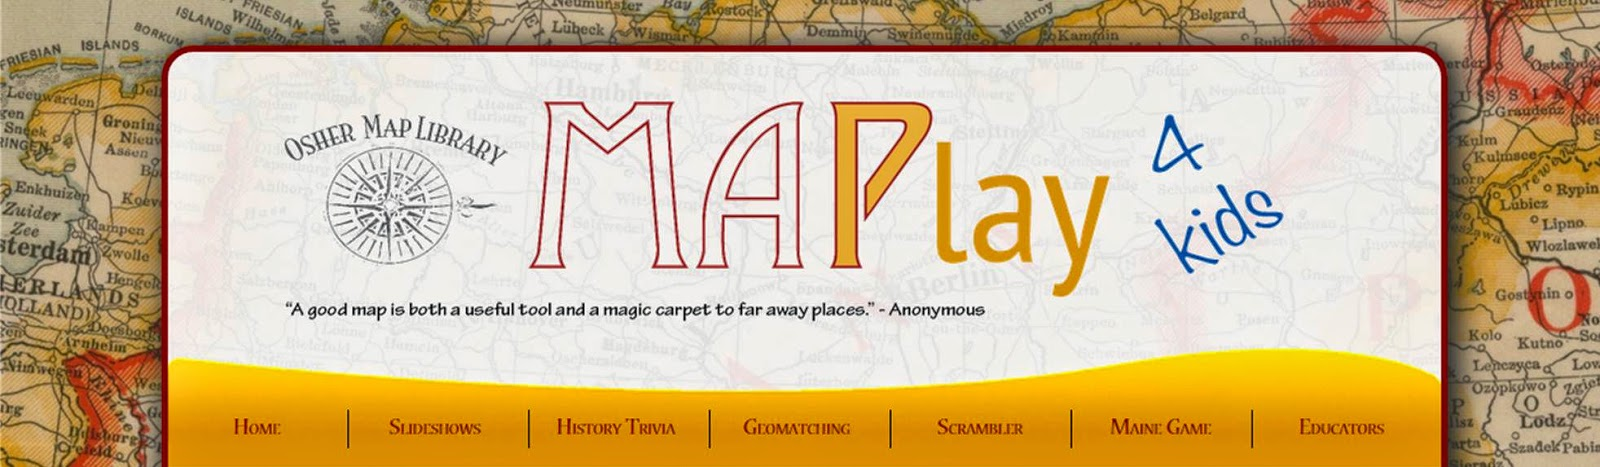 Osher Map Library MaPlay 4 kids